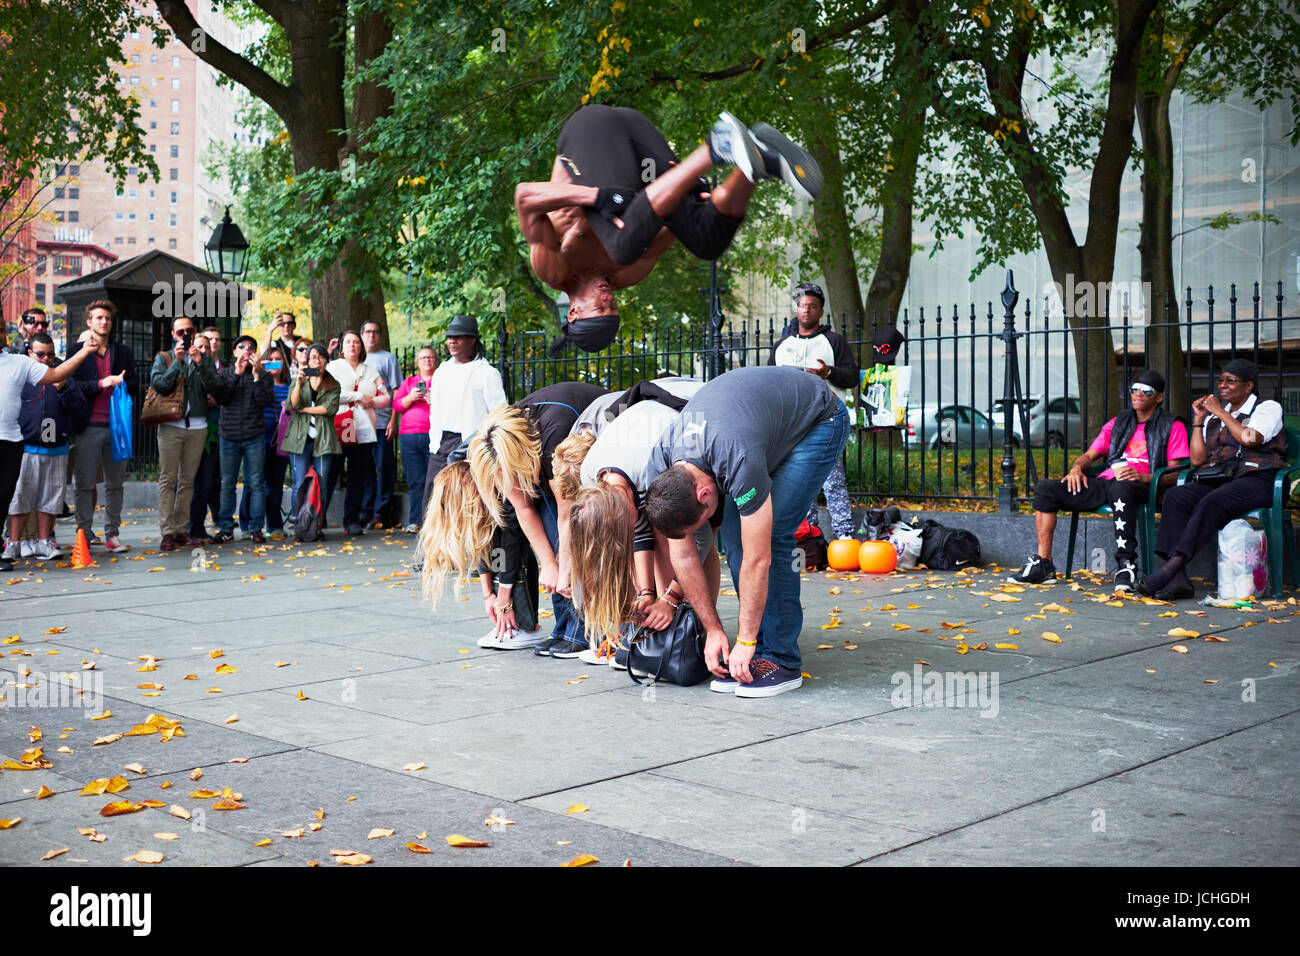 NEW YORK CITY - OCTOBER 18, 2014: a man from a perfomance group is doing a somersault over a line of tourists on - Stock Image